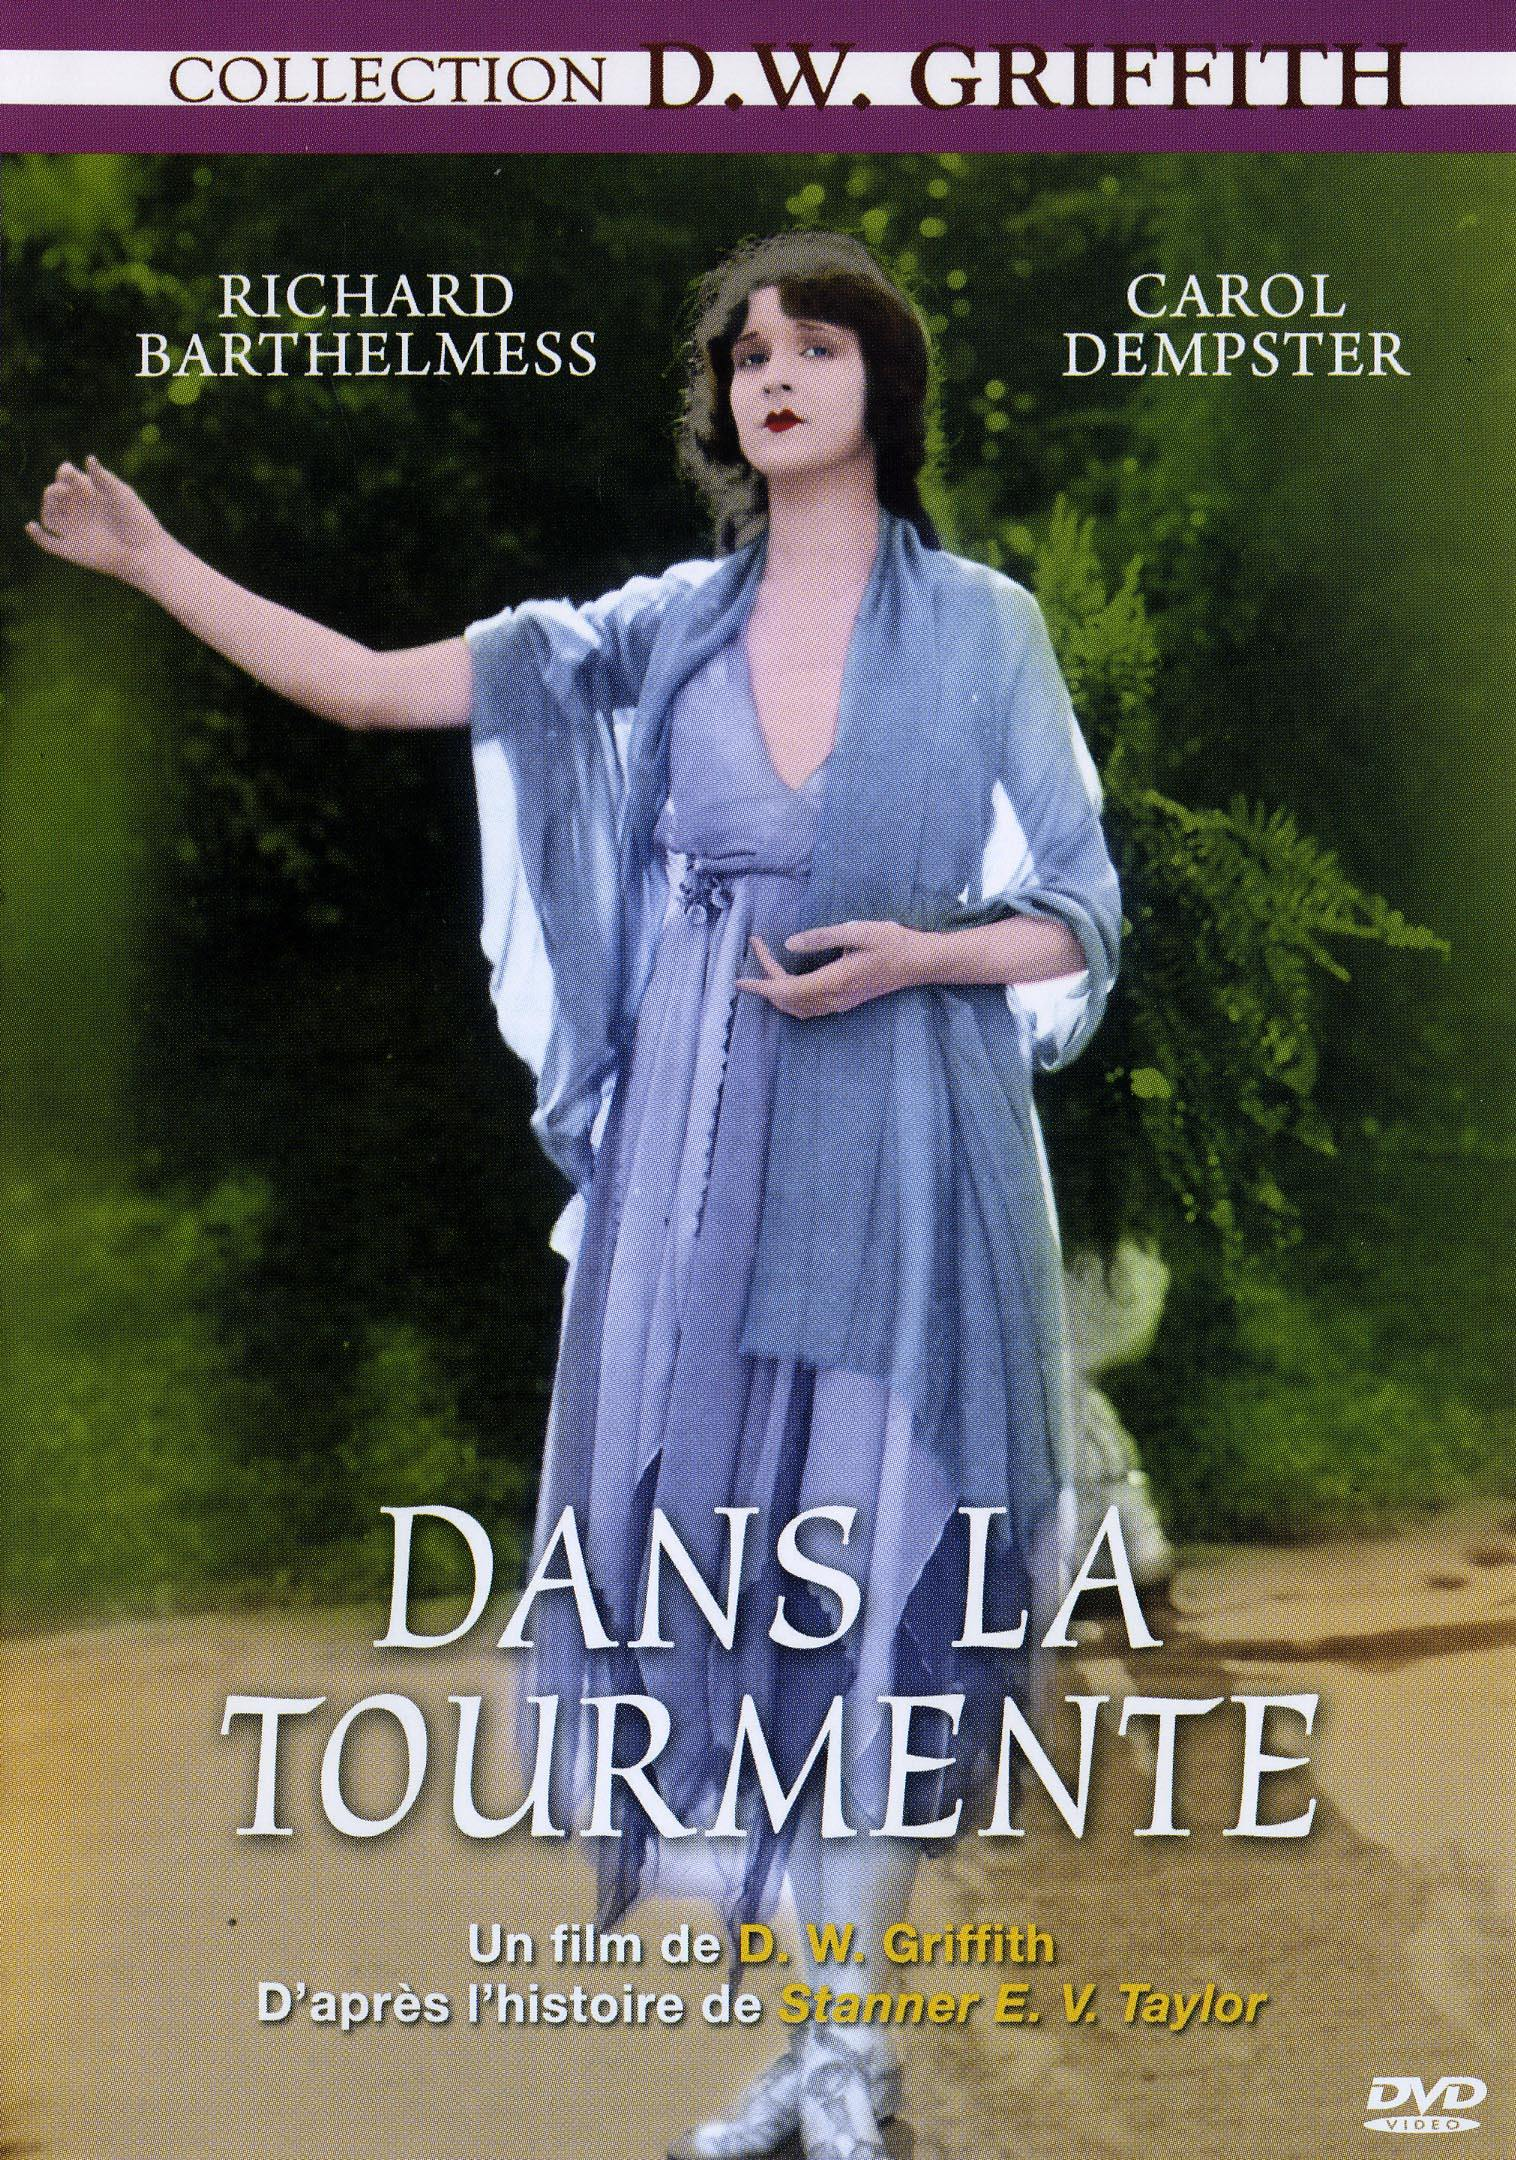 Dans la tourmente - dvd  collection d.w griffith